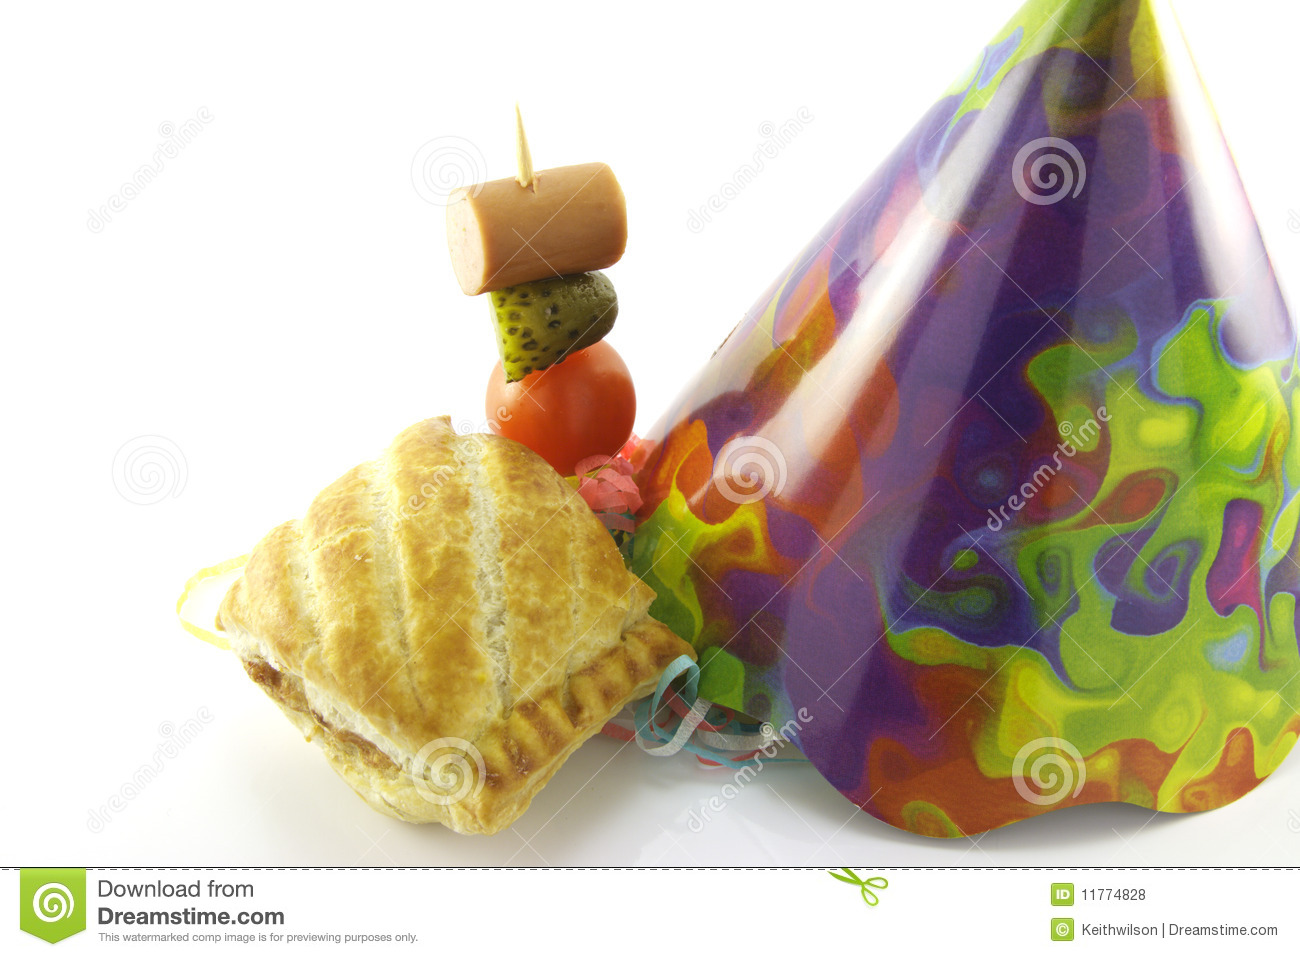 Sausage Roll and Party Hat